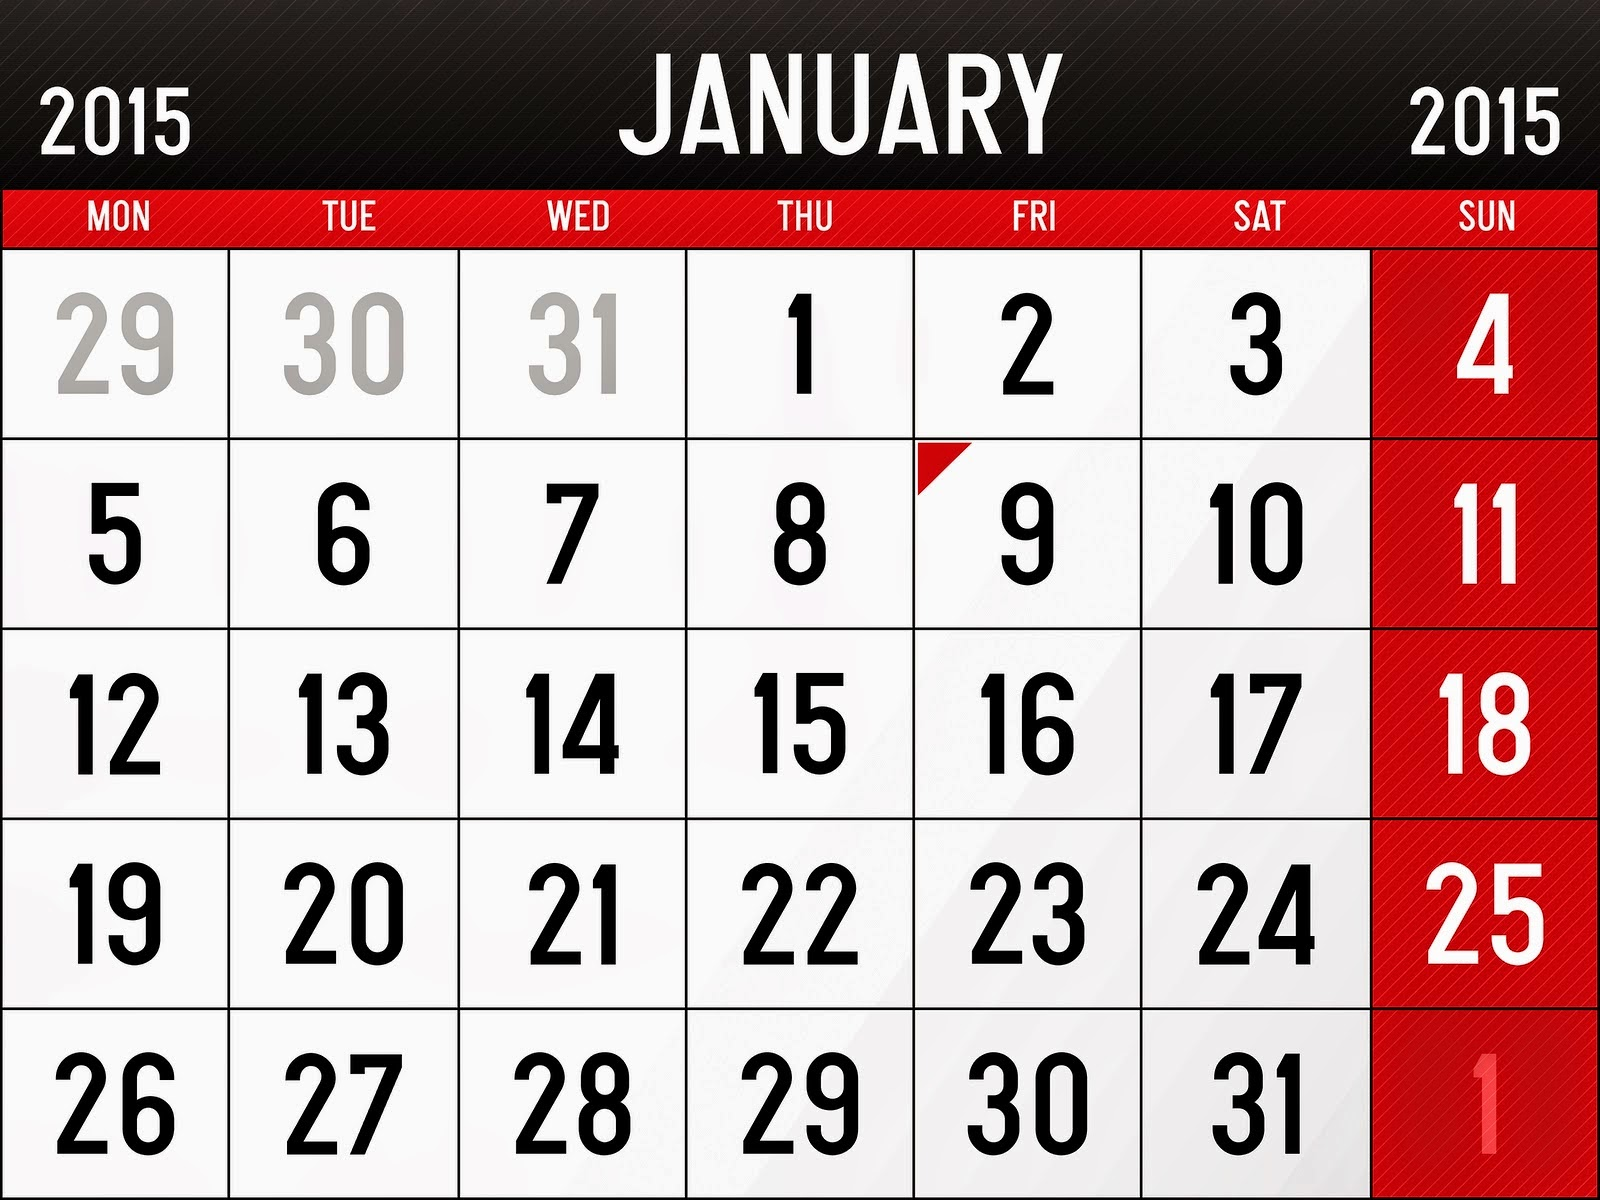 January Calendar 2015 With Holidays : Mobile price in pakistan and education update news